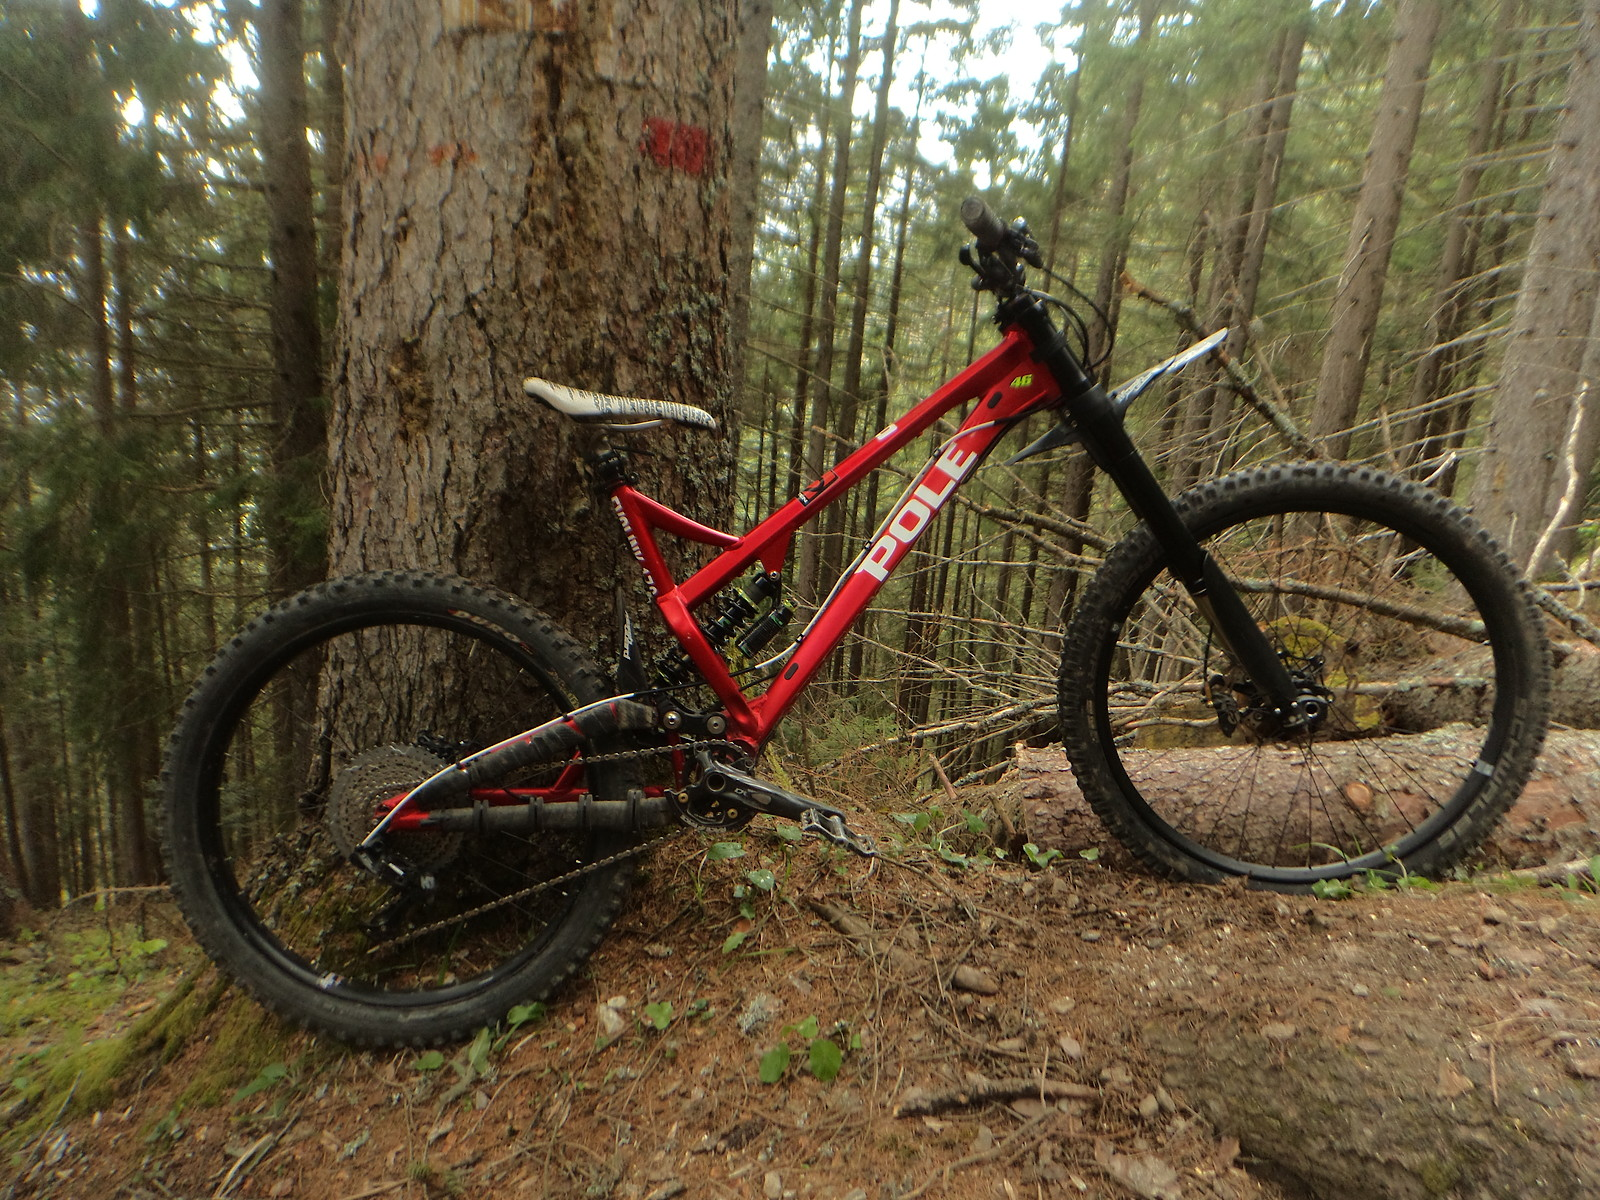 Pole EVOLINK176 - Fred_Pop - Mountain Biking Pictures - Vital MTB